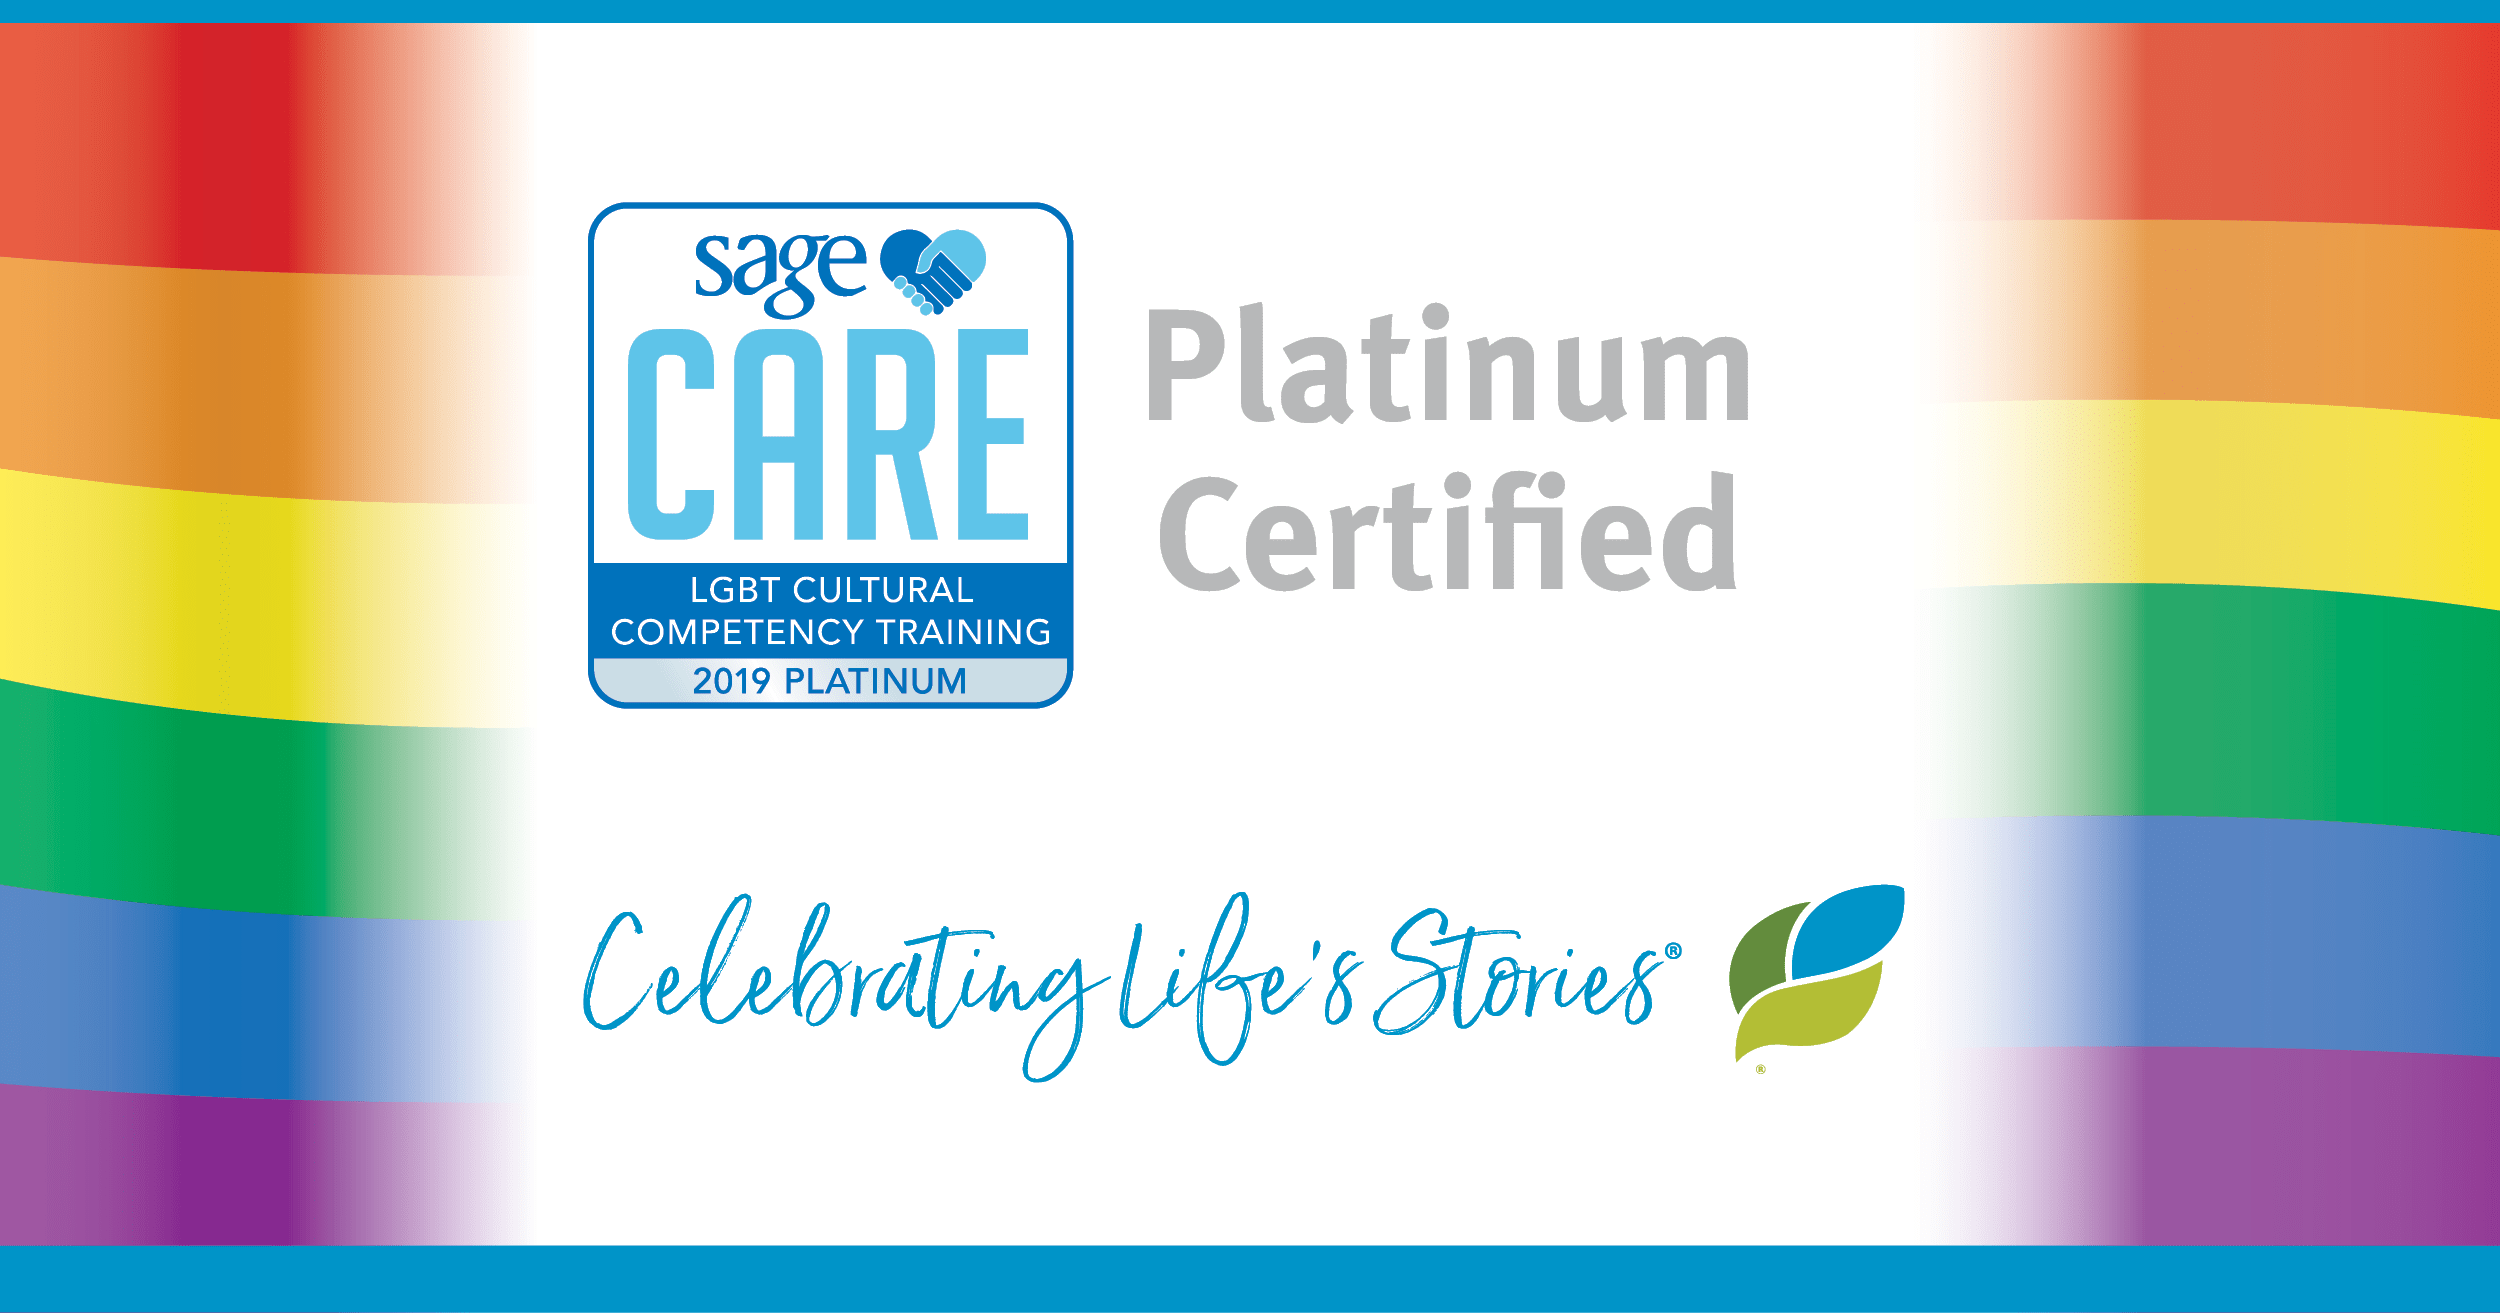 SAGECare Platinum Certified Celebrating Life's Stories